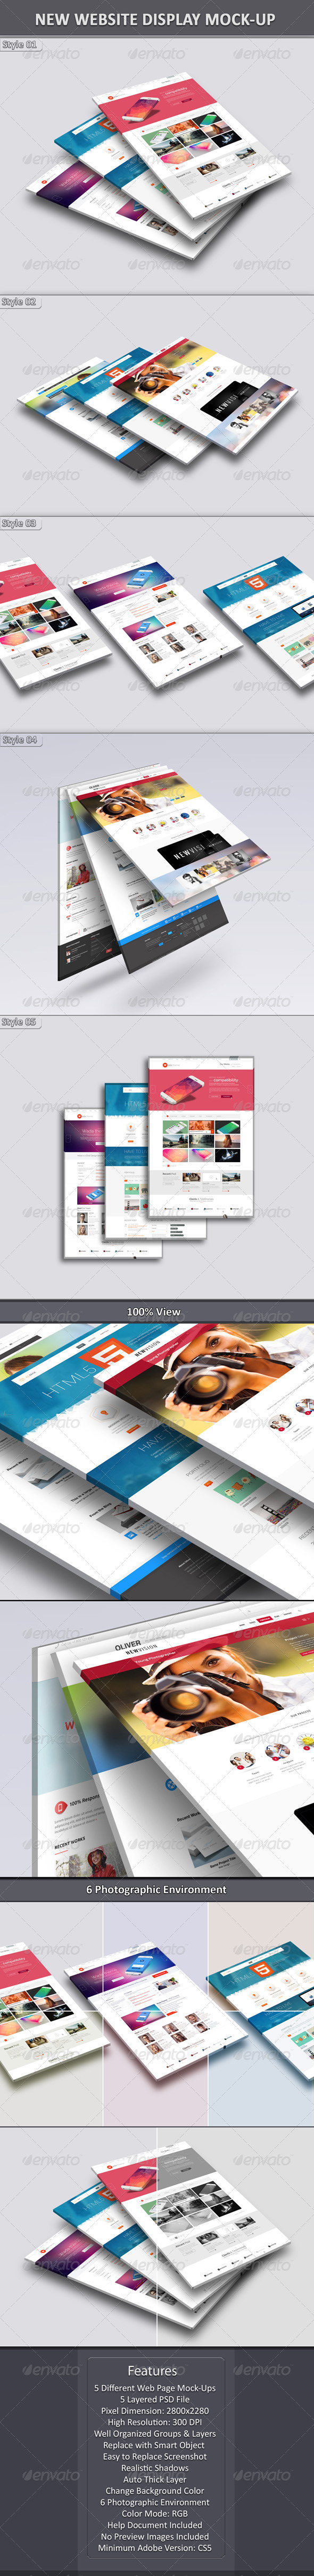 GraphicRiver New Website Display Mock-Up 7094191